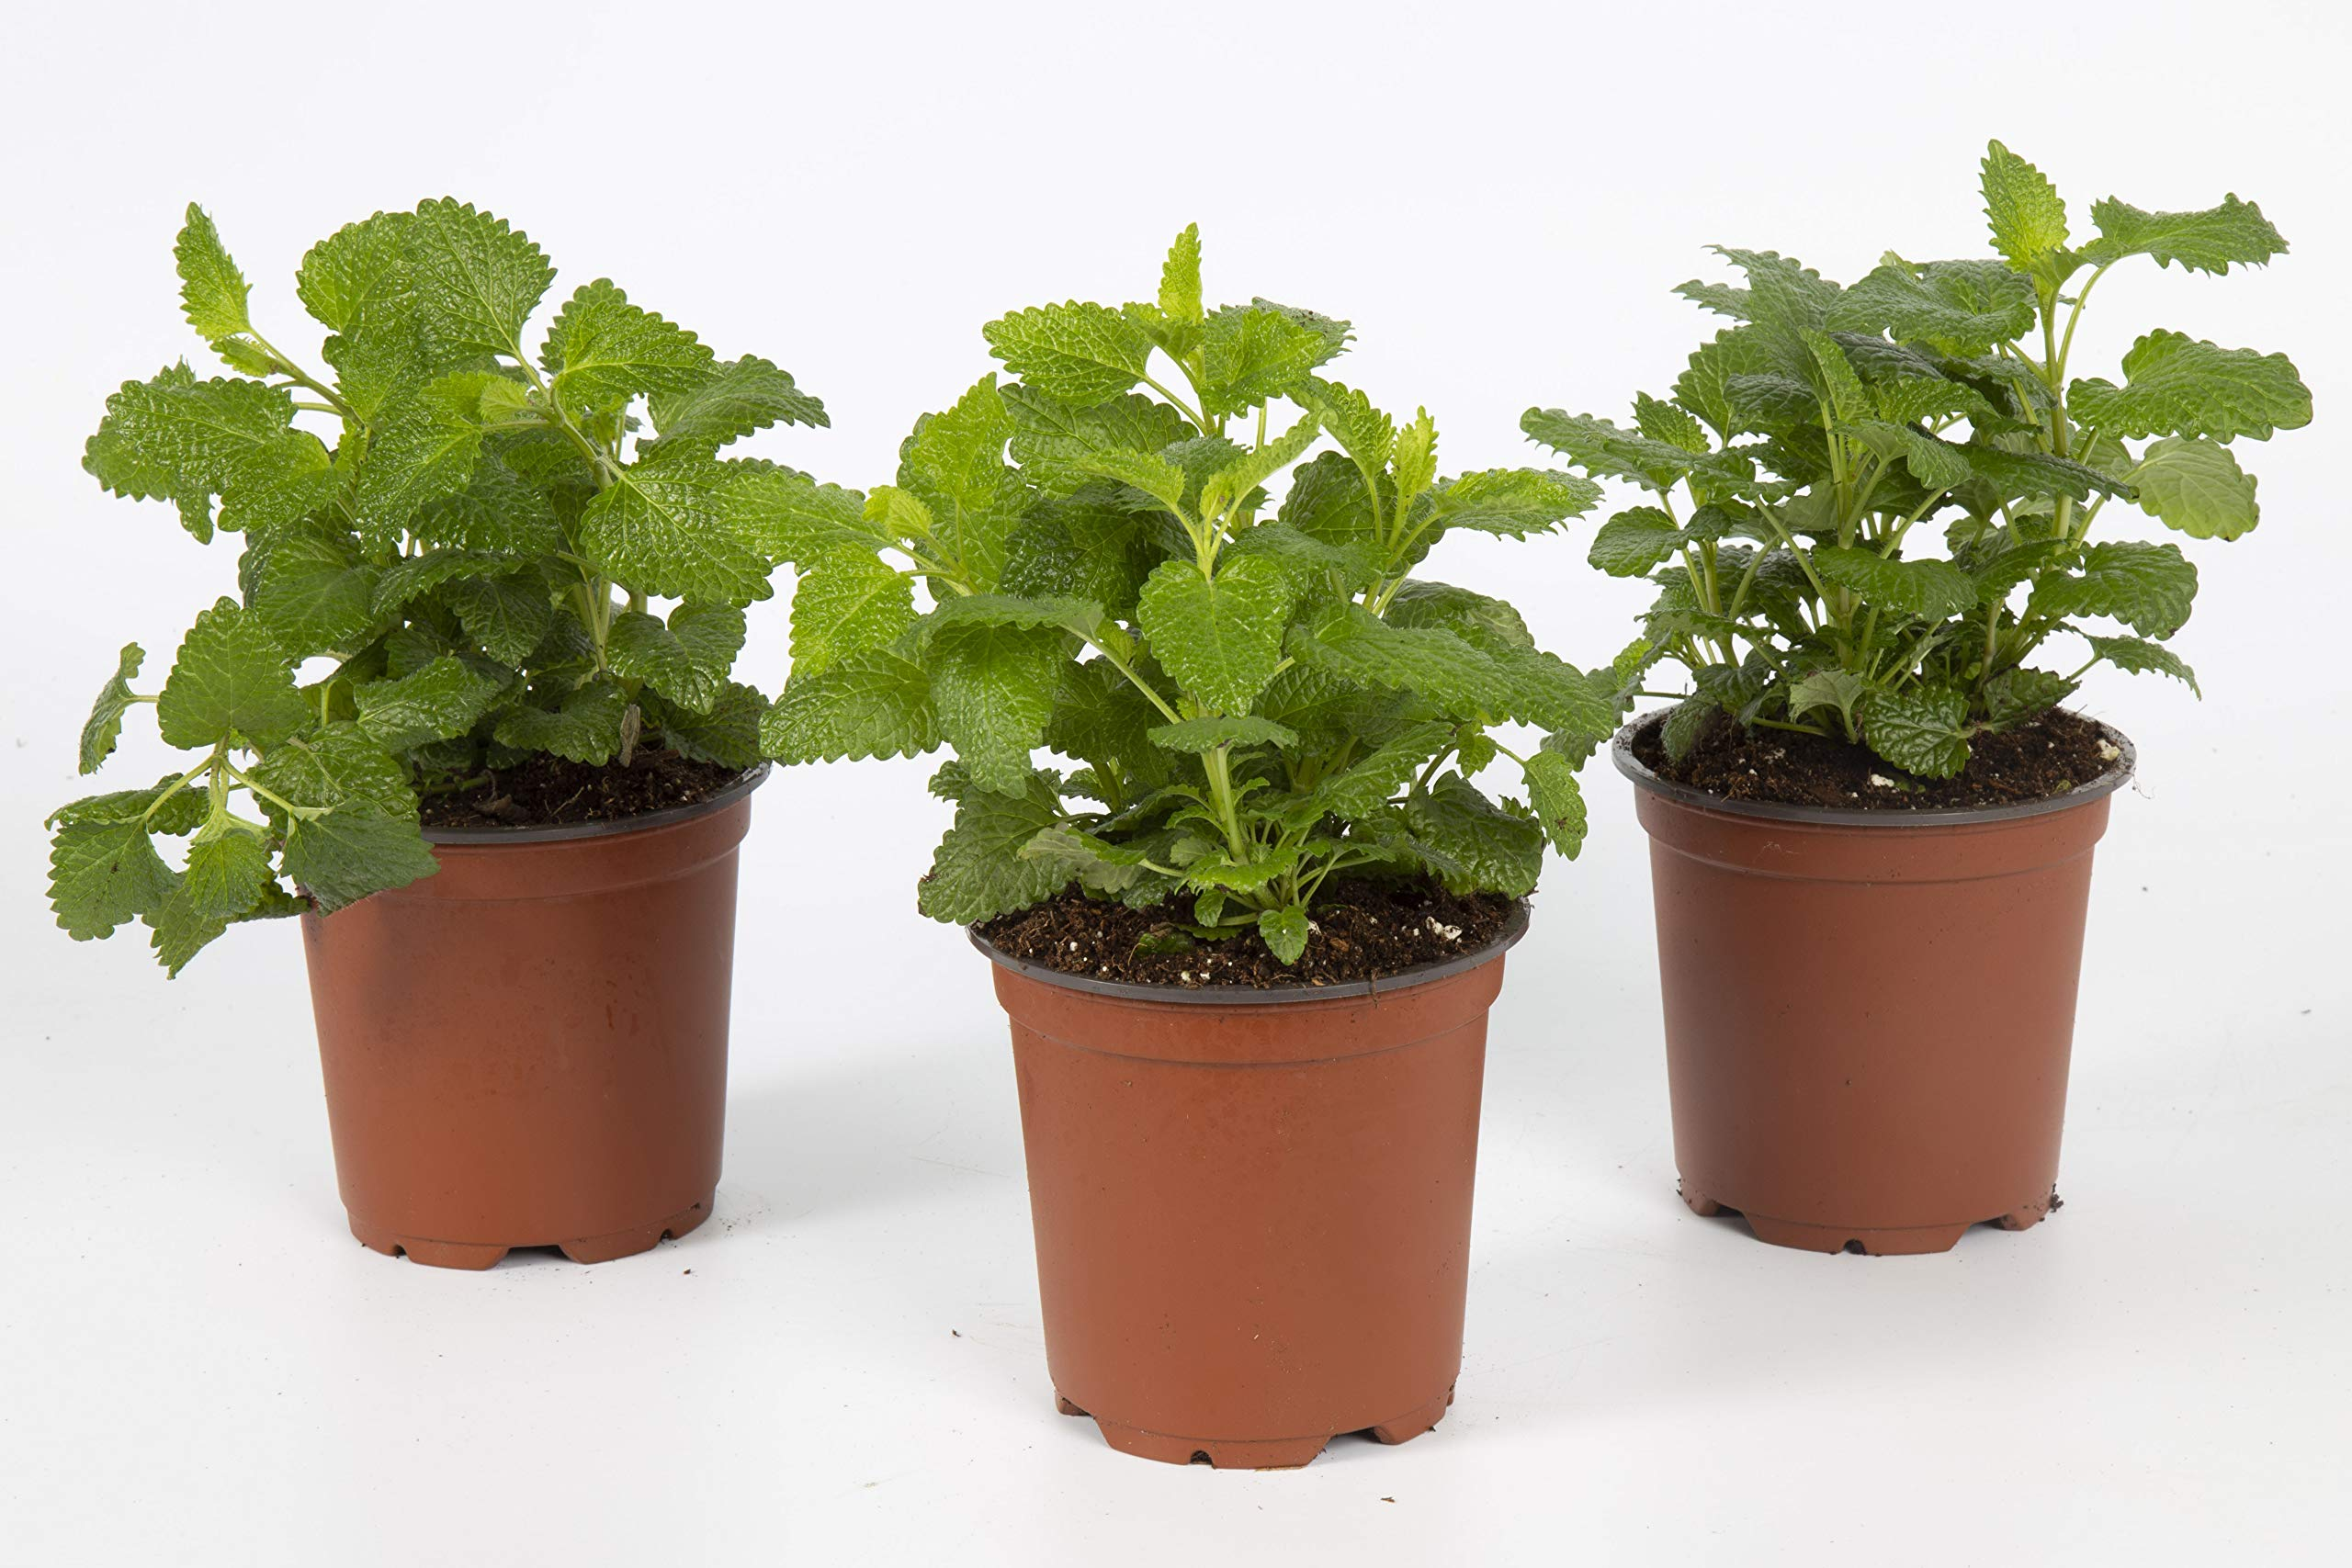 The Three Company Healthy Live 4'' Lemon Balm (3 Per Pack), 1 Pint Pot, Natural Stress Reliever by The Three Company